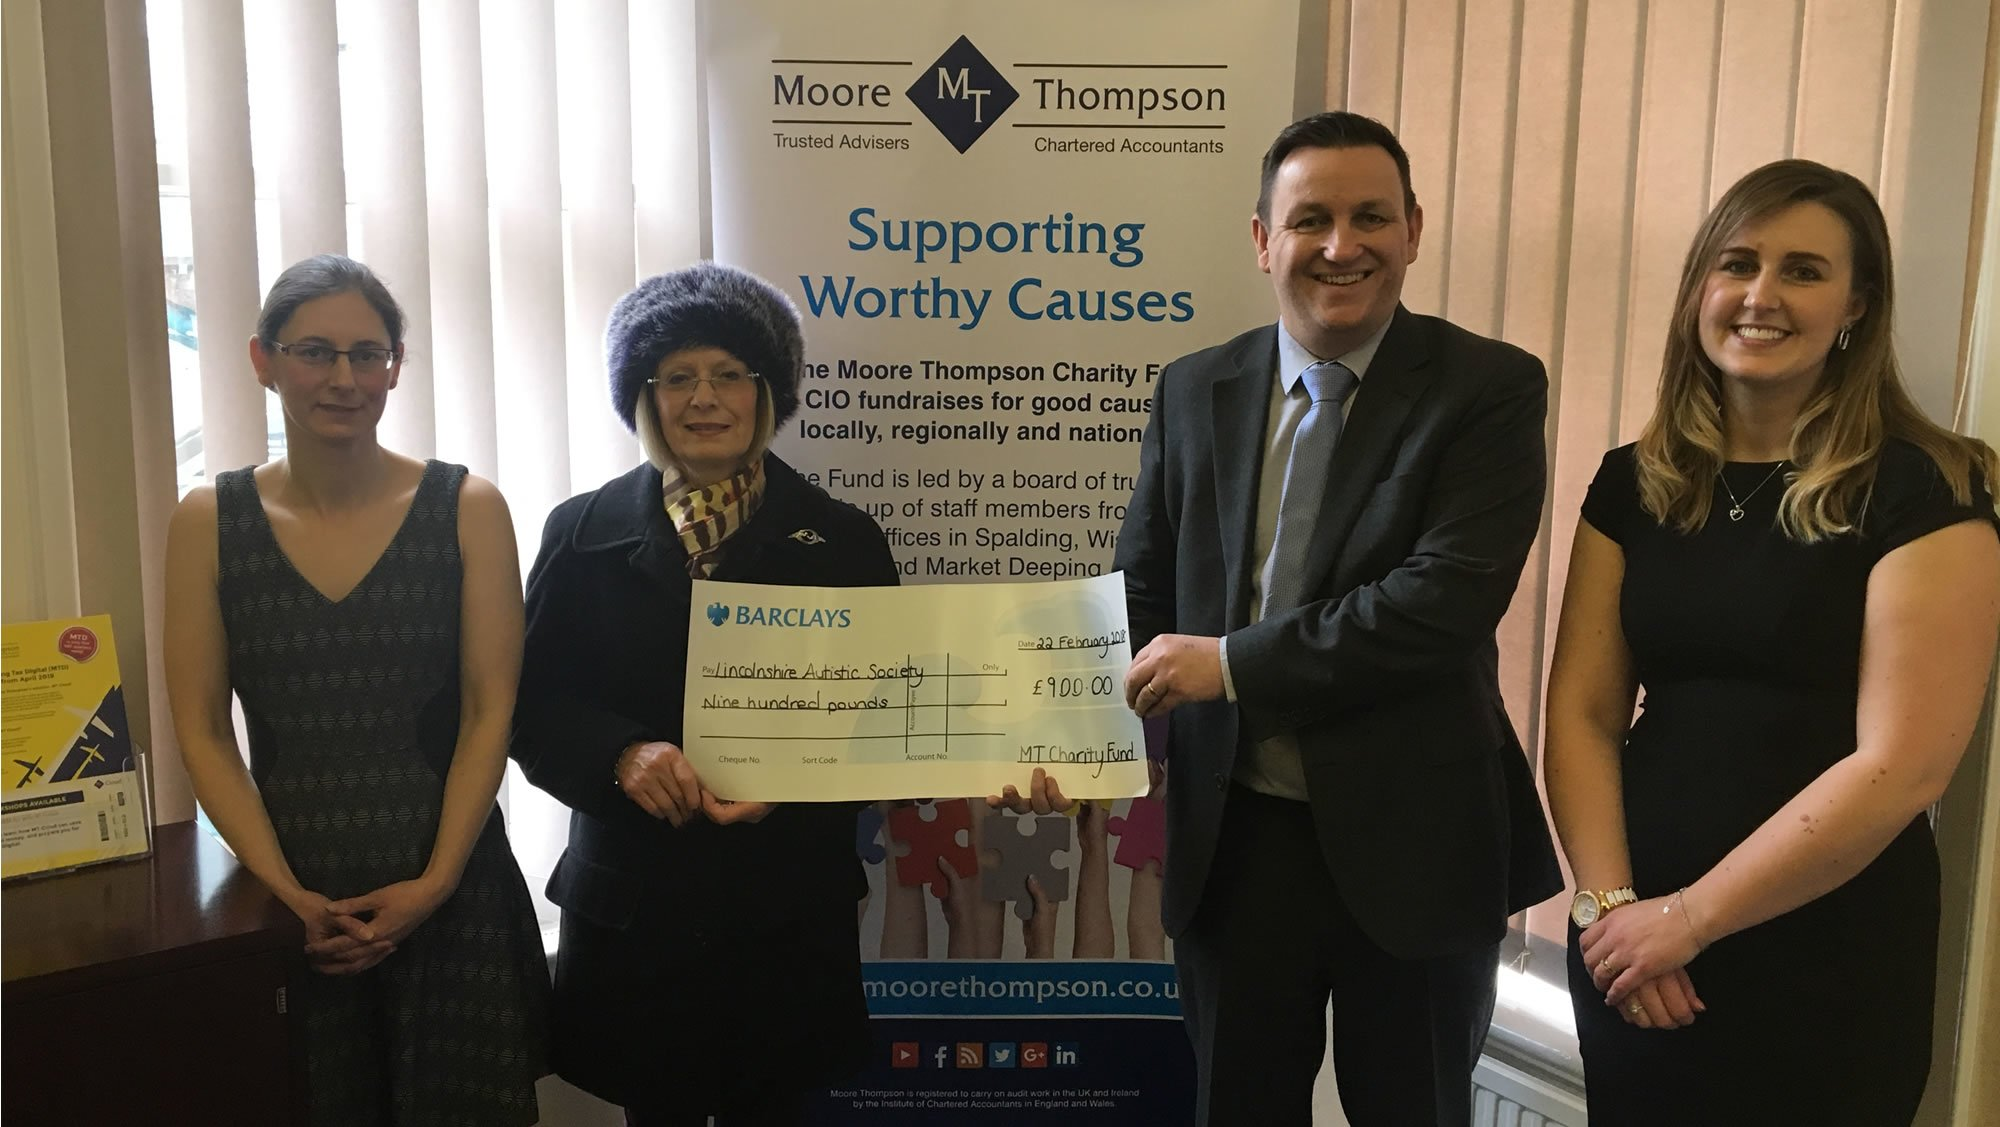 The Moore Thompson Charity Fundraisers - Moore Thompson